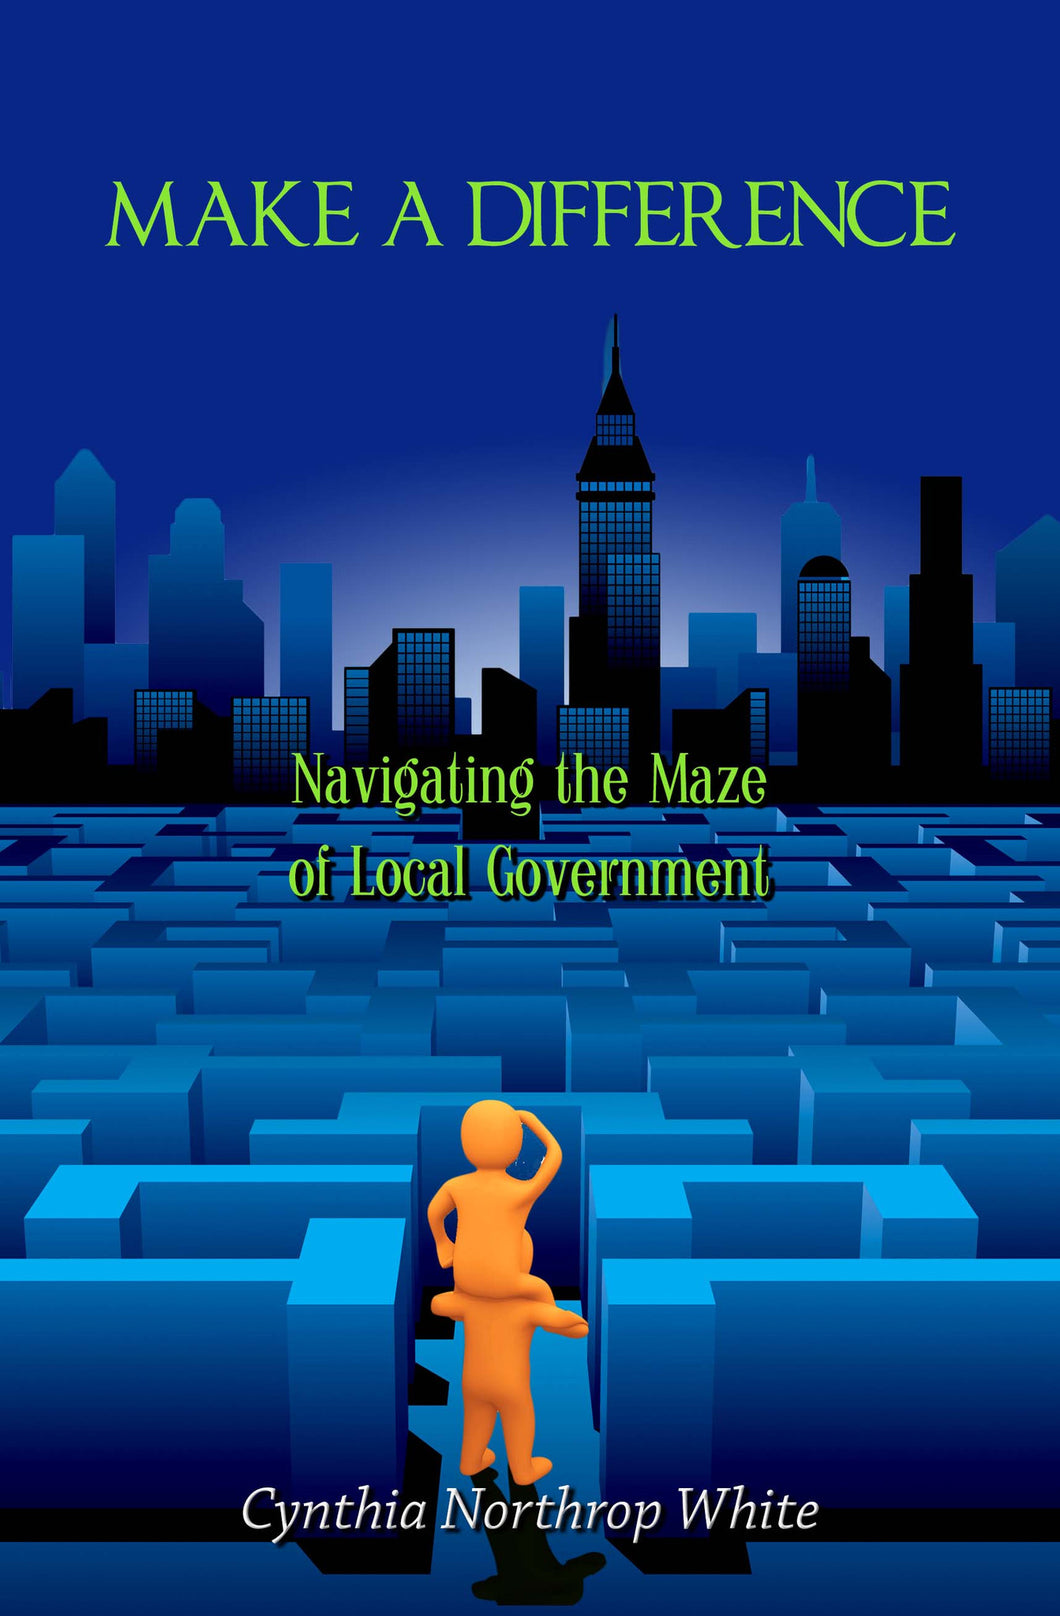 Making a Difference: Navigating the Maze of Local Government